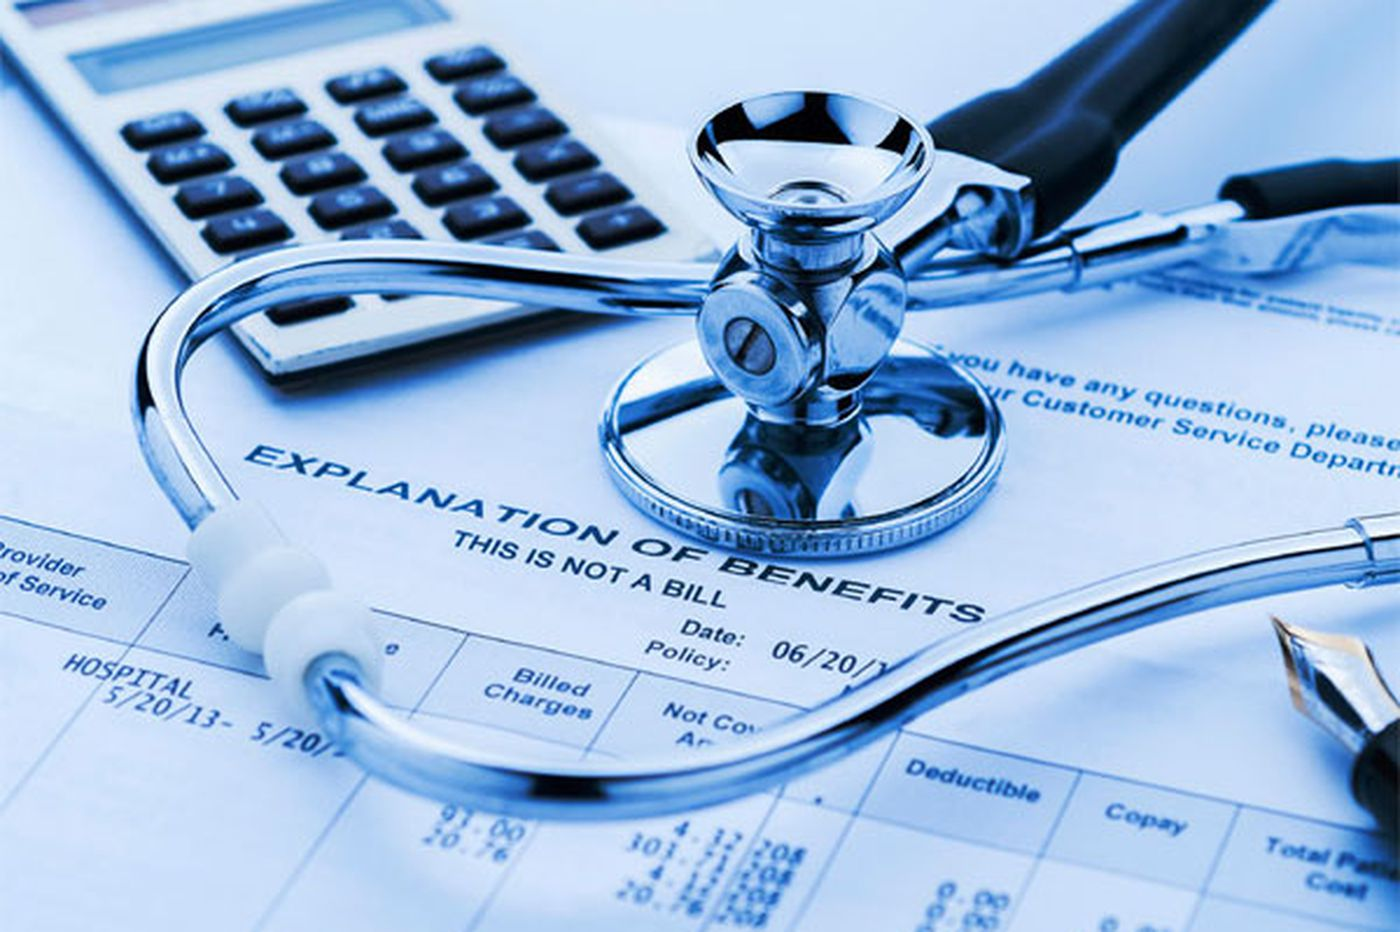 Obamacare: Will Year 2 be more expensive?